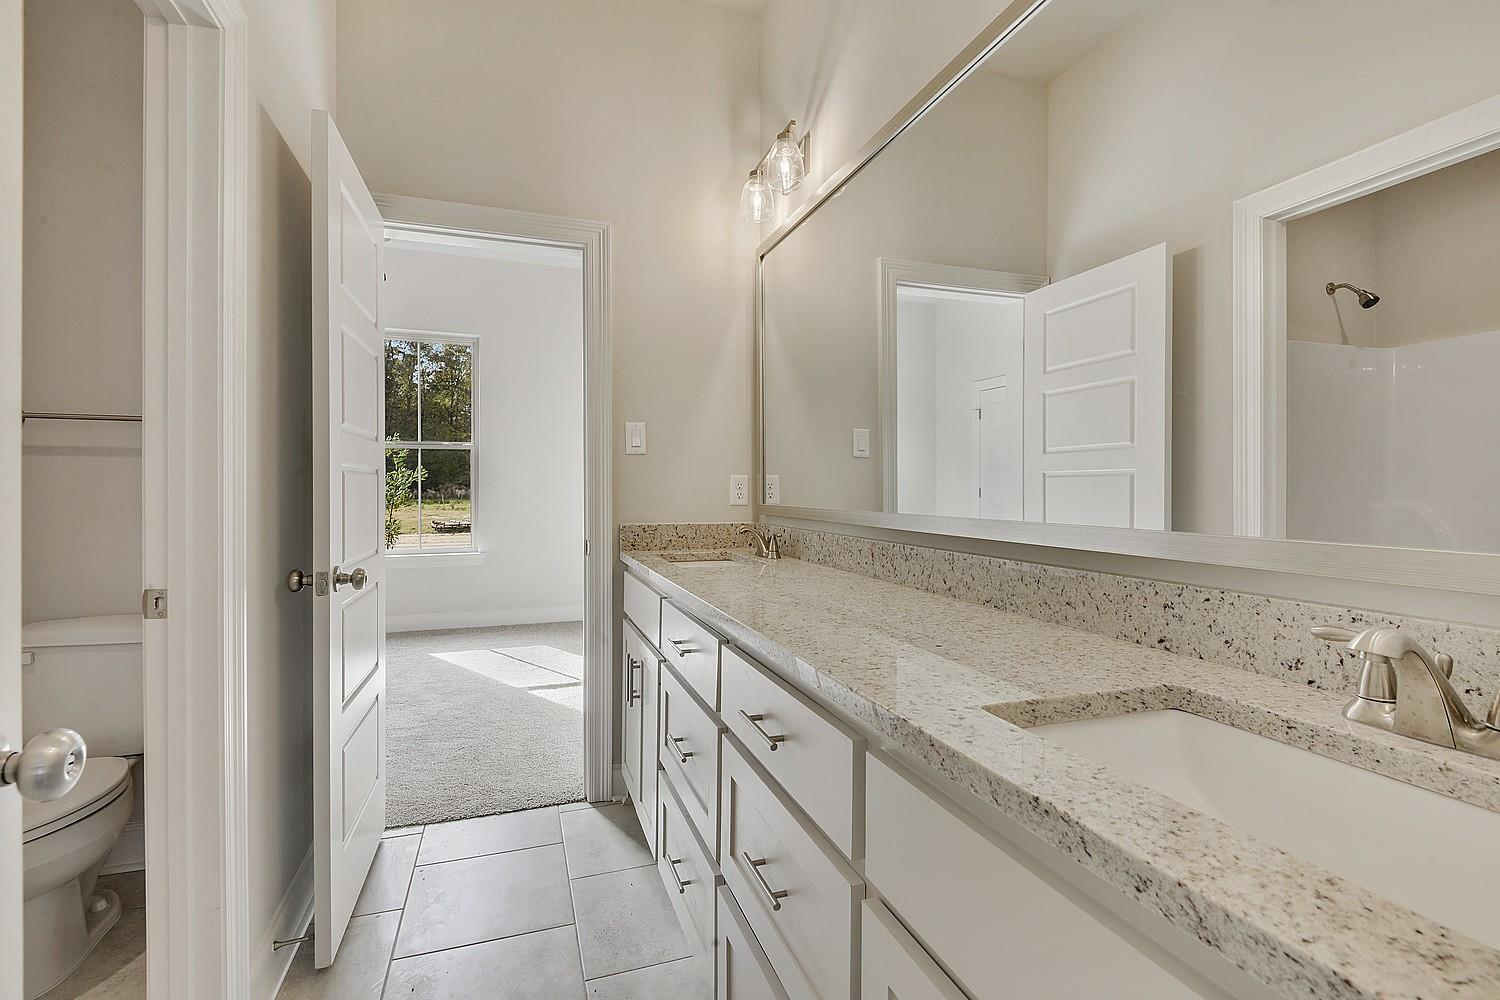 Bathroom featured in the Adair I By Willie & Willie  in Baton Rouge, LA